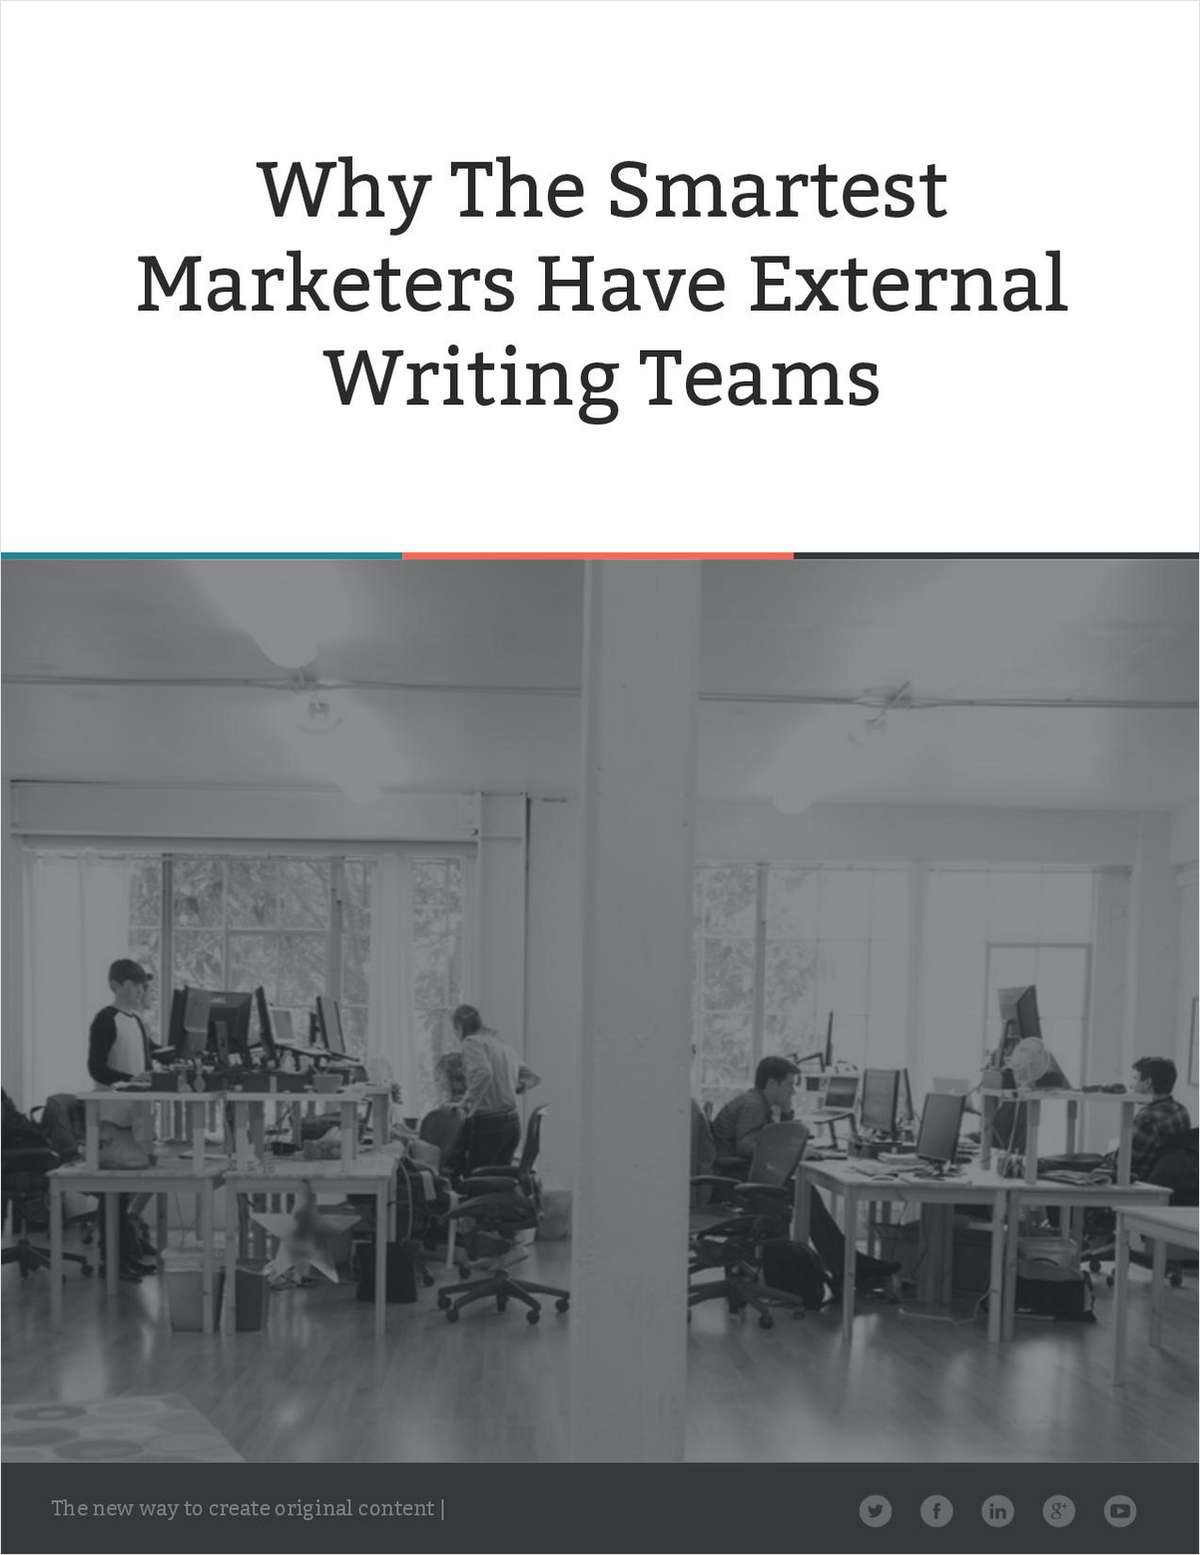 Why the Smartest Marketers Have External Writing Teams